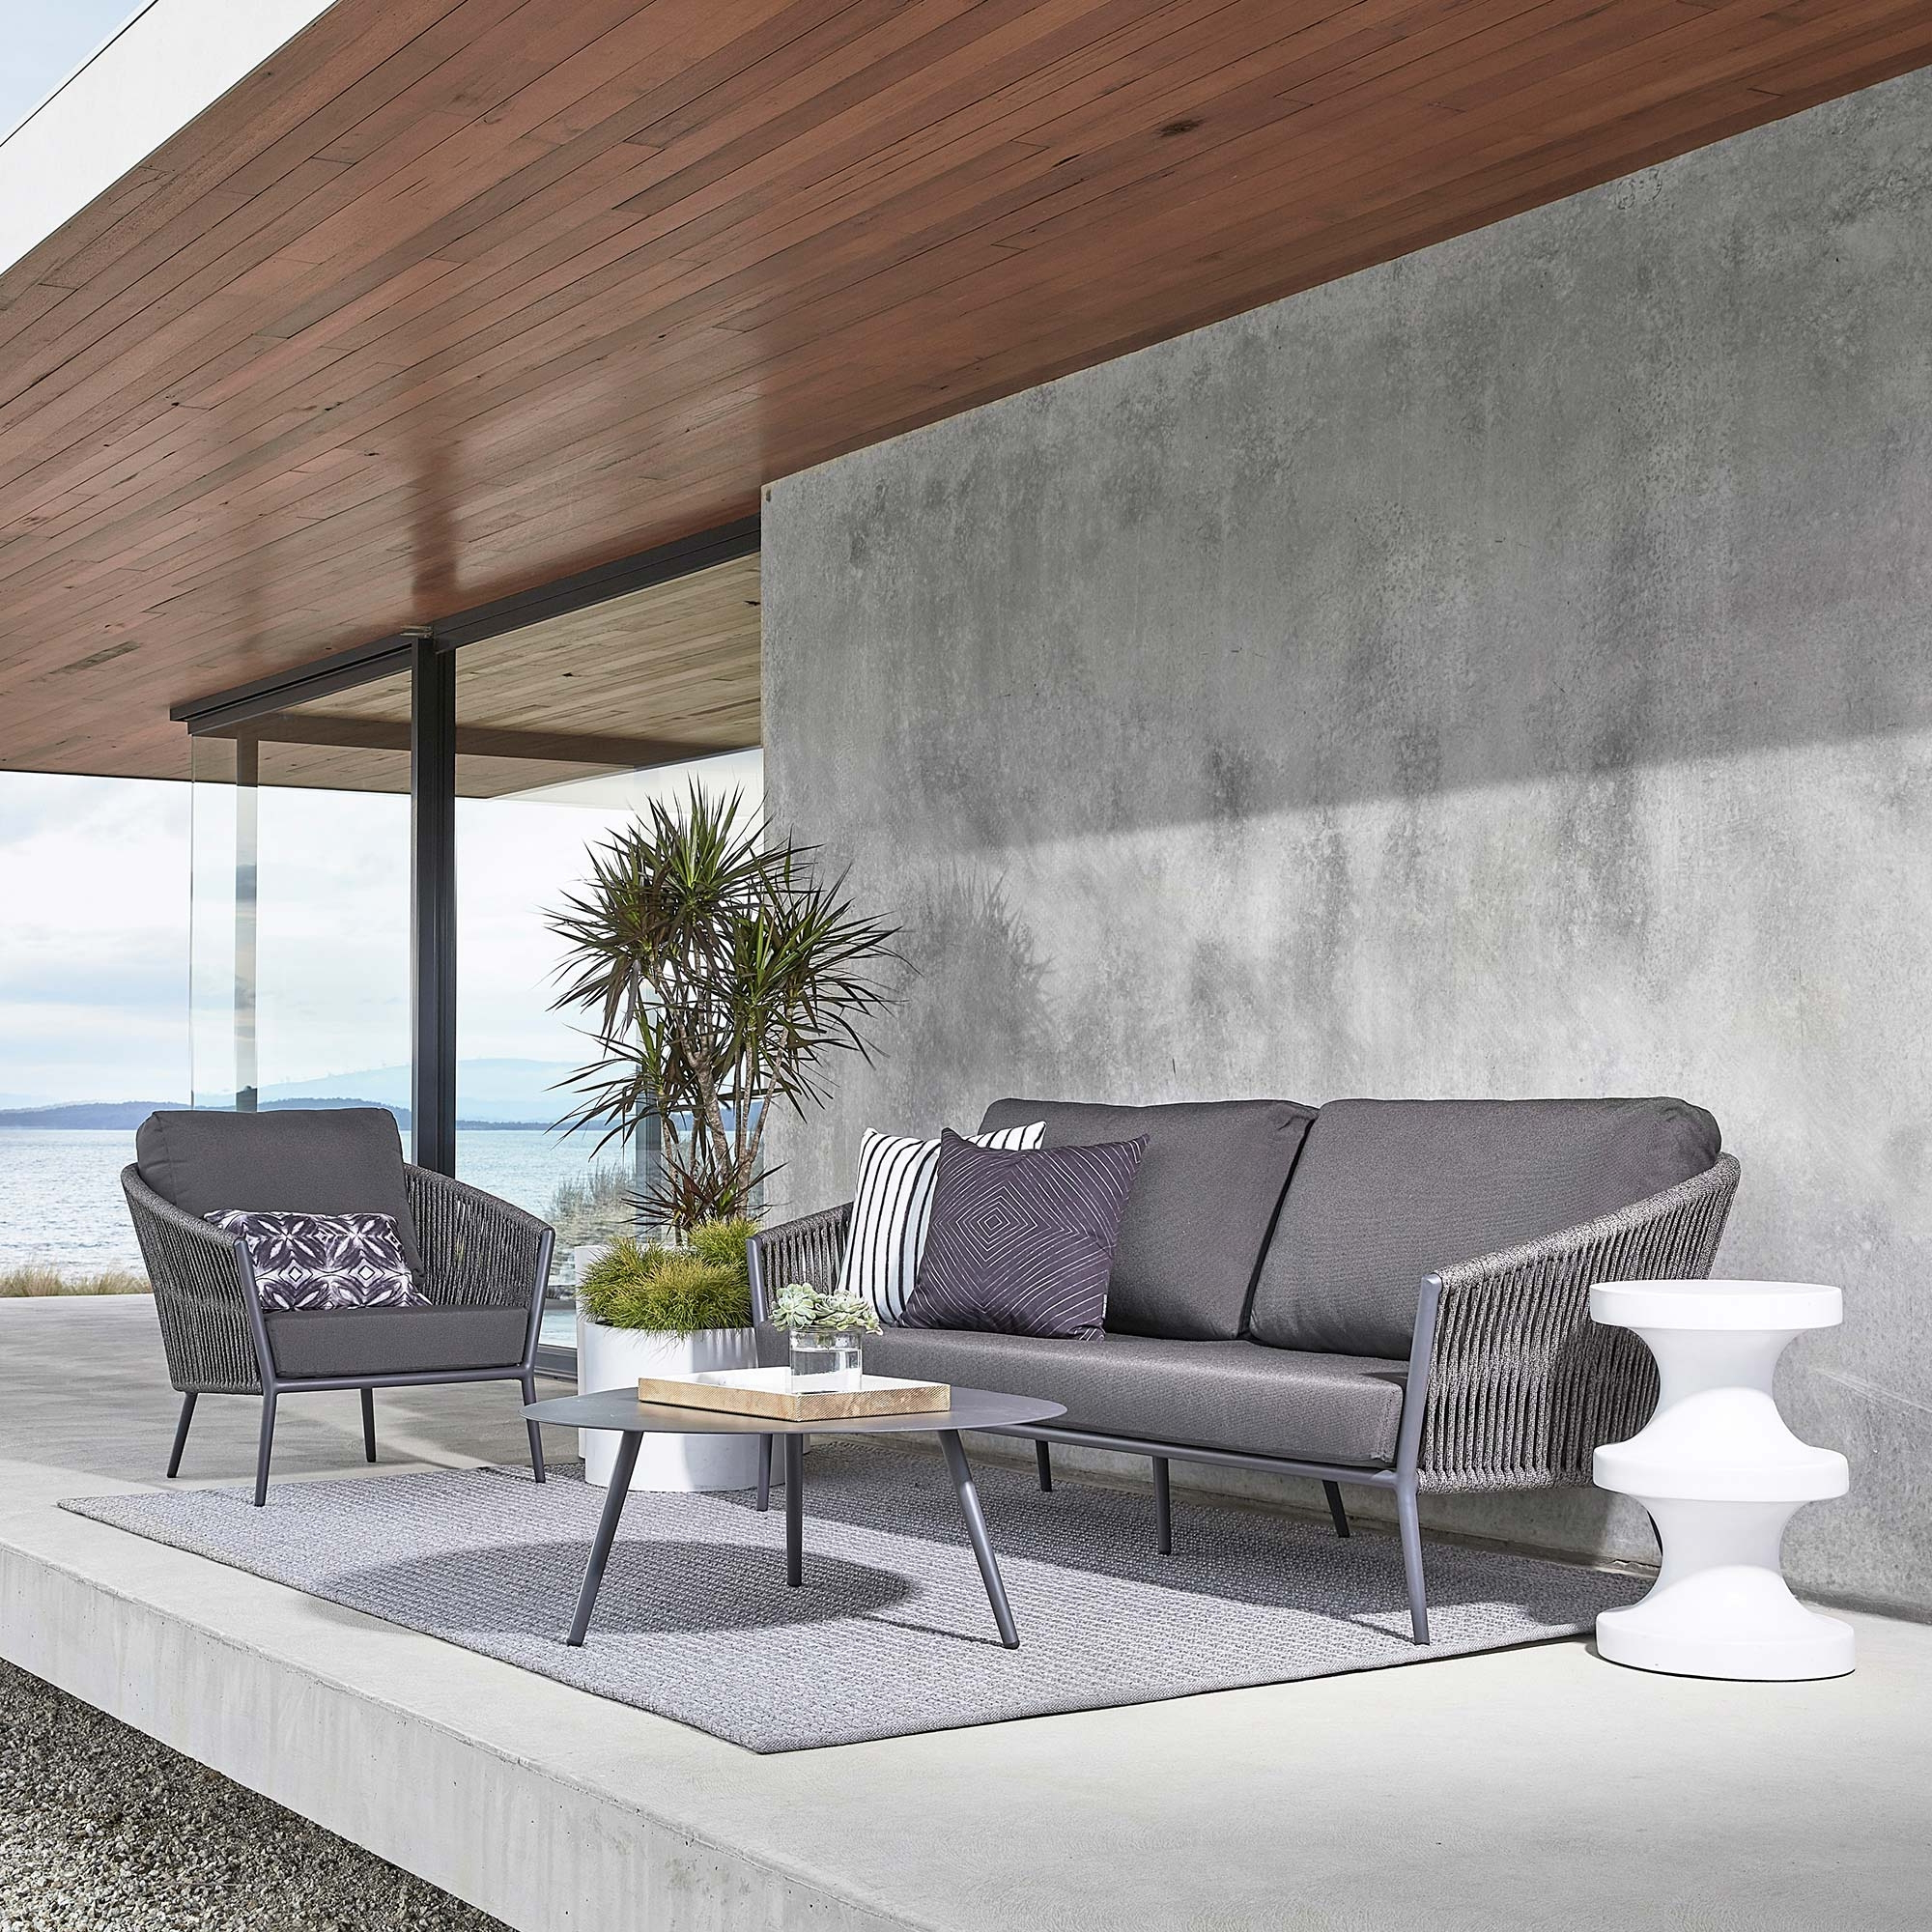 2020 Catalina Outdoor Sofa With Catalina Outdoor Sofas With Cushions (Gallery 10 of 11)